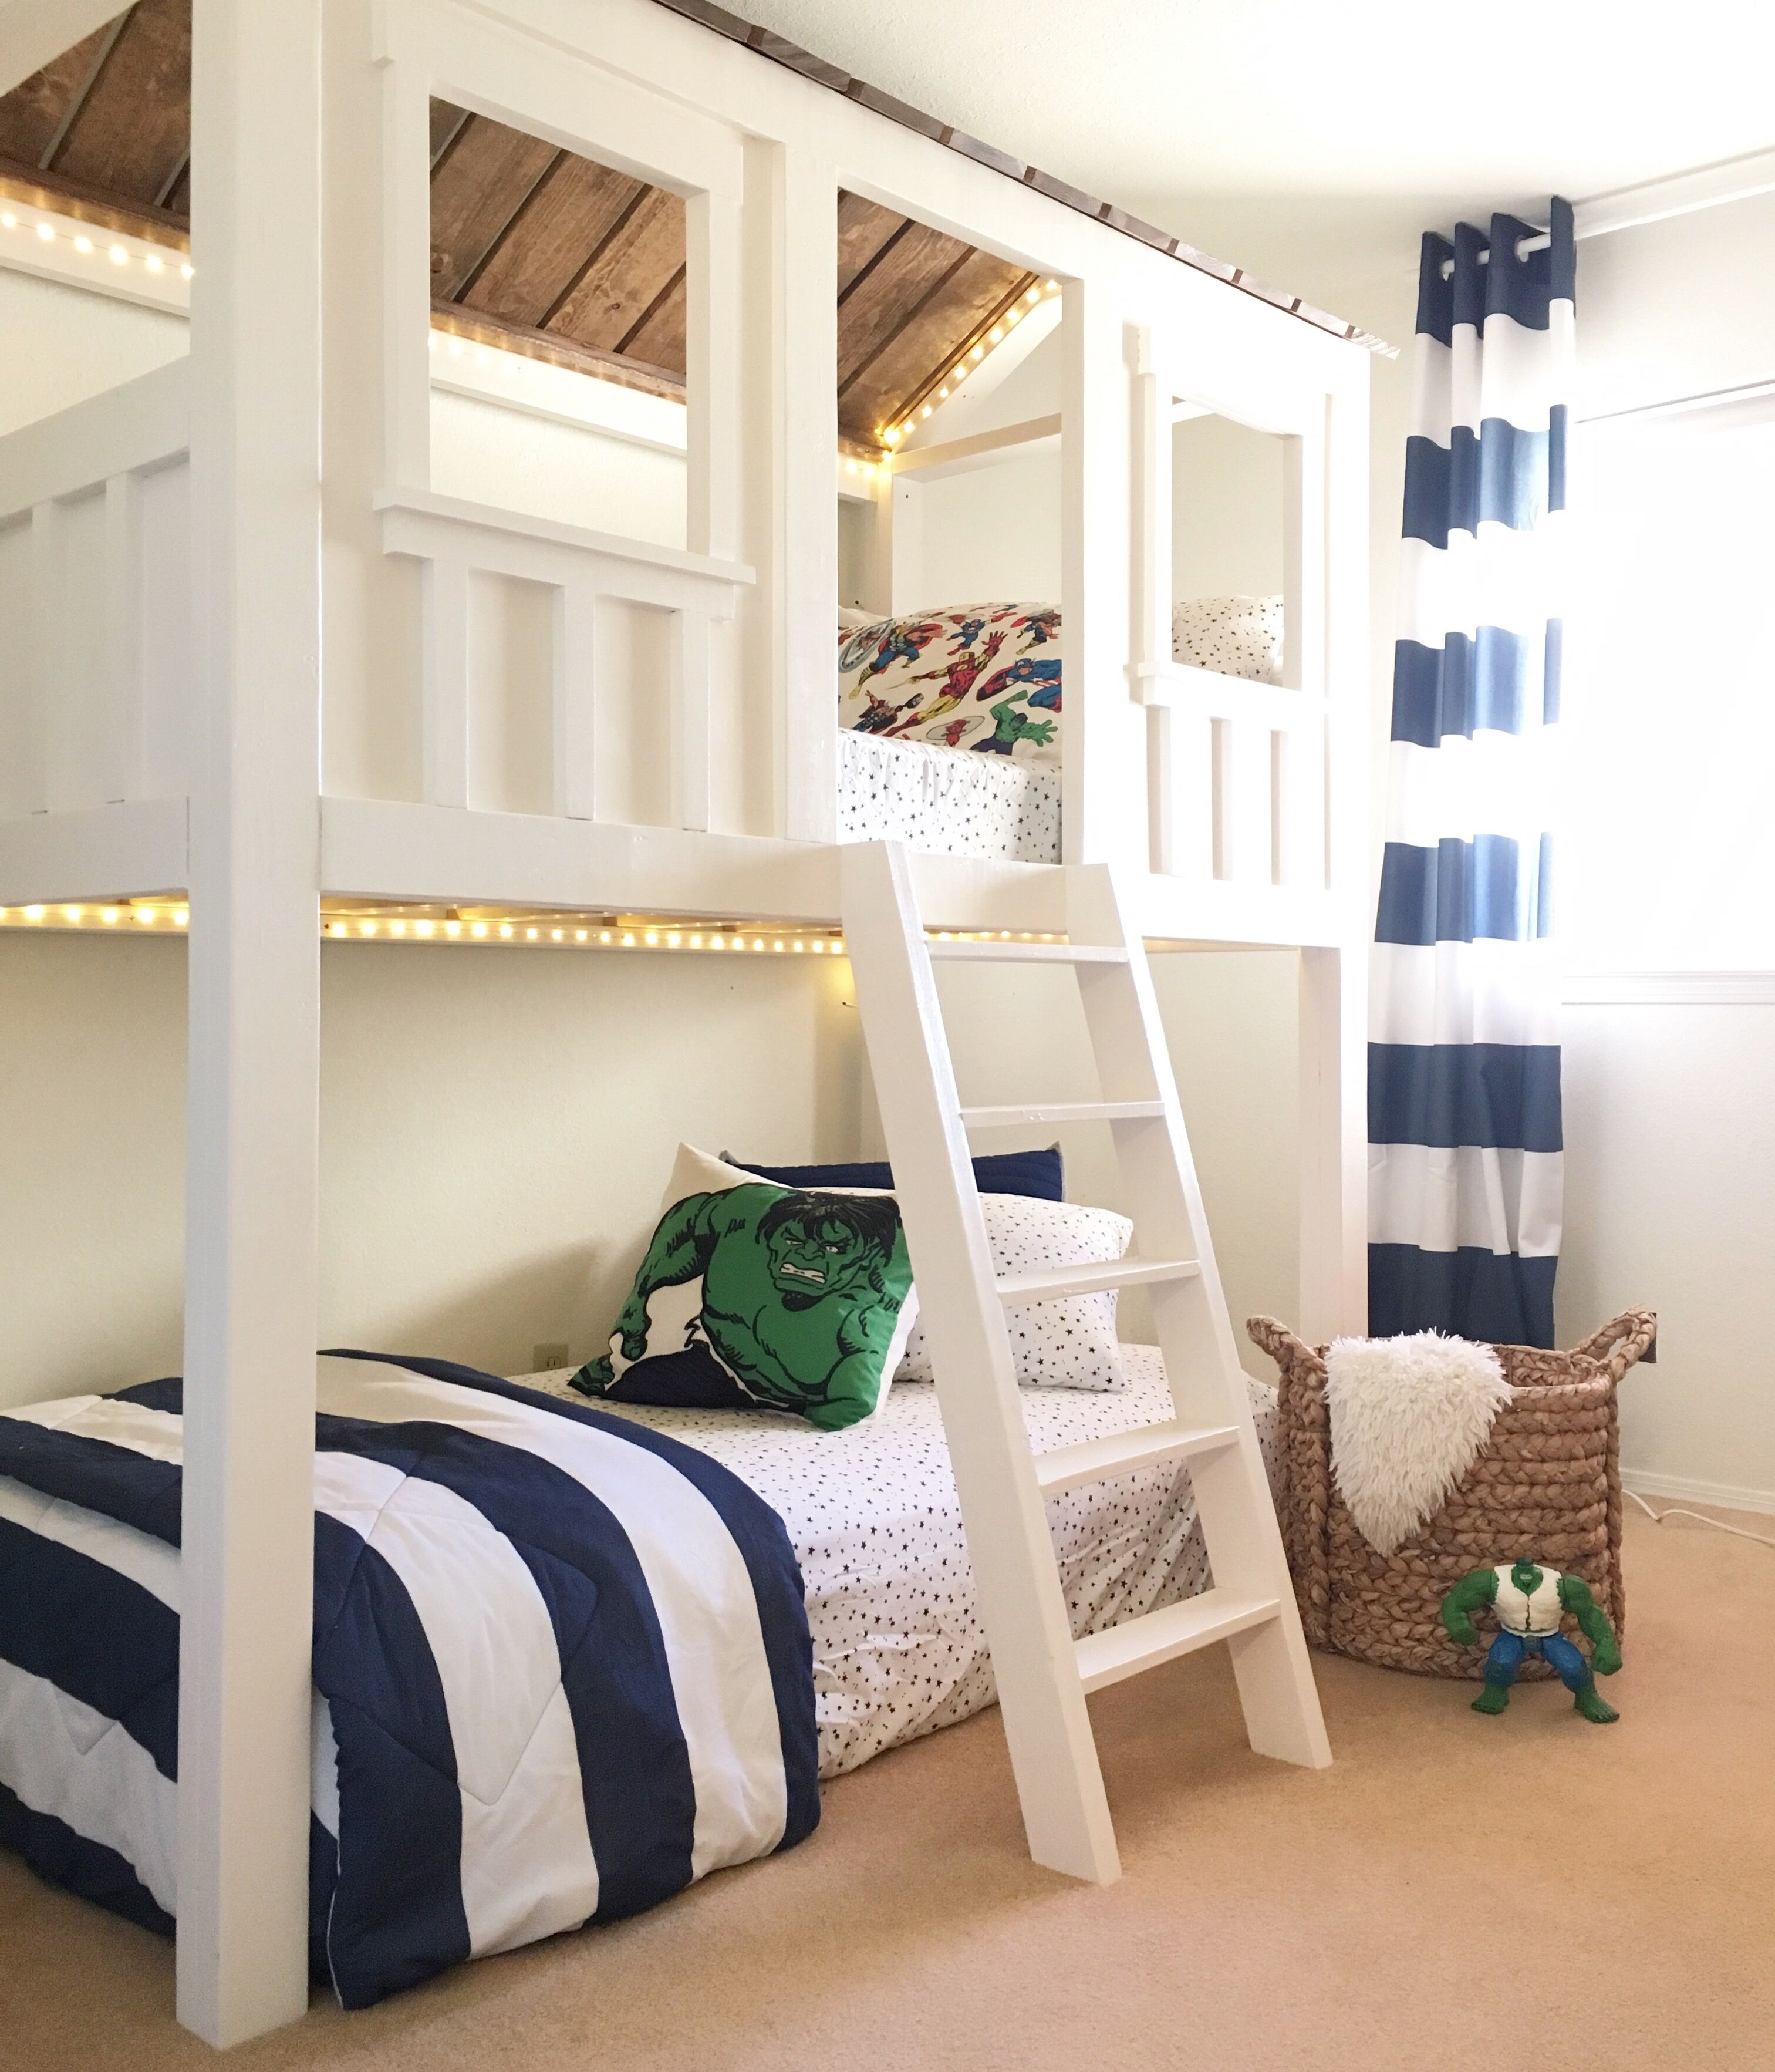 Best Ana White Loft Cabin Bed Diy Projects Loft Bed Plans 400 x 300